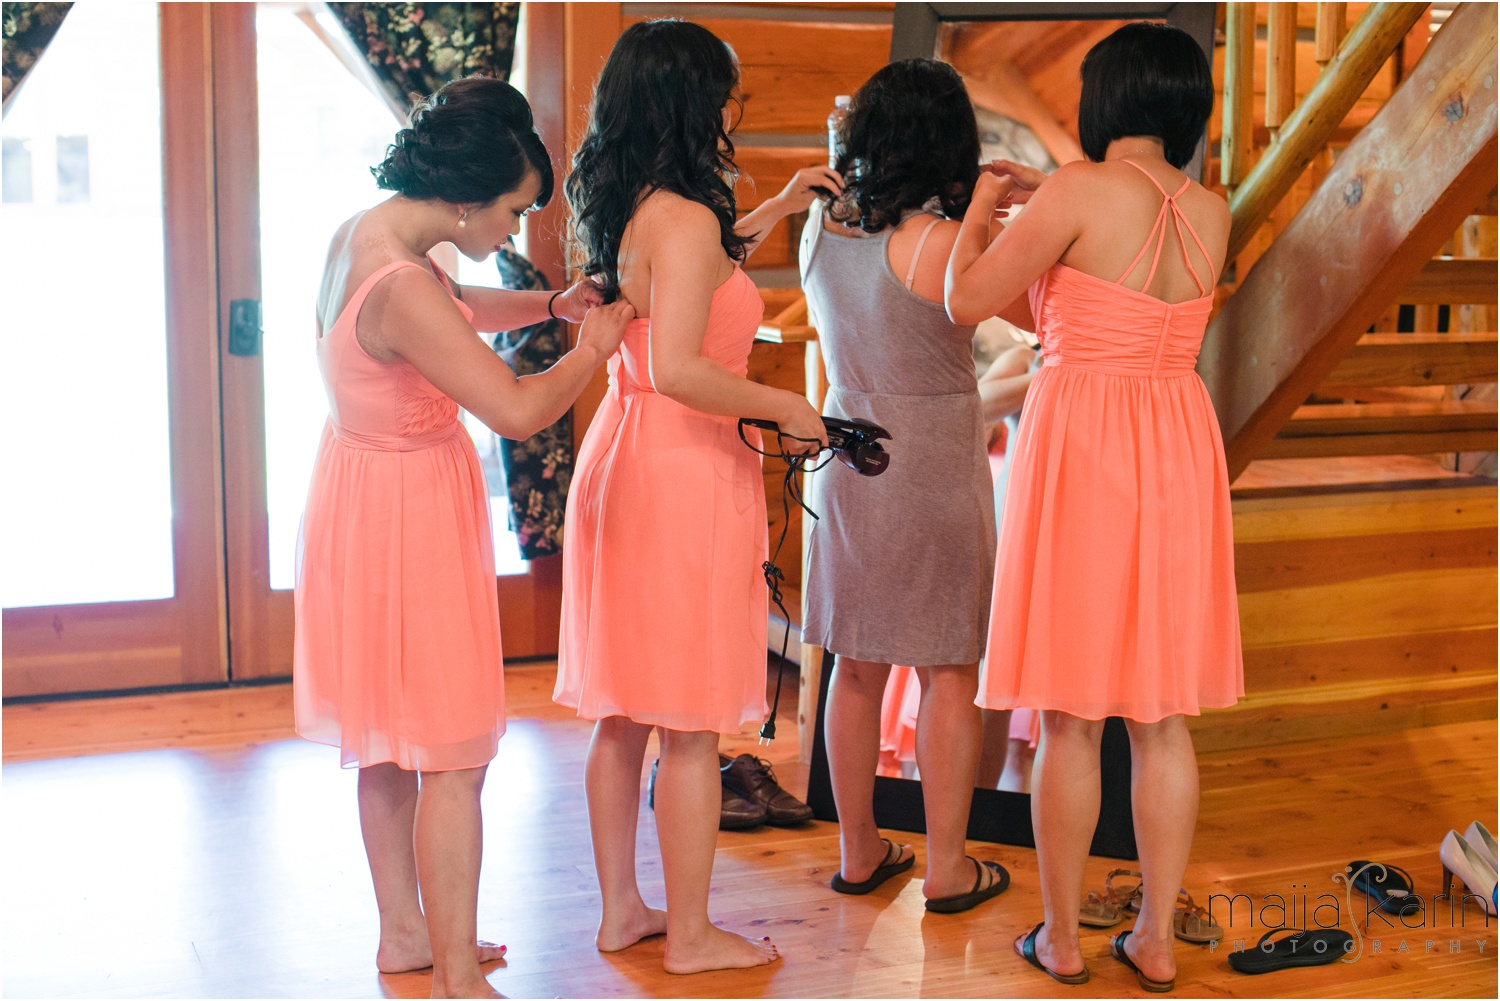 Mountain-Springs-Lodge-Leavenworth-Washington-Wedding-Photographer-Majiin-Karin-Photography_22.jpg